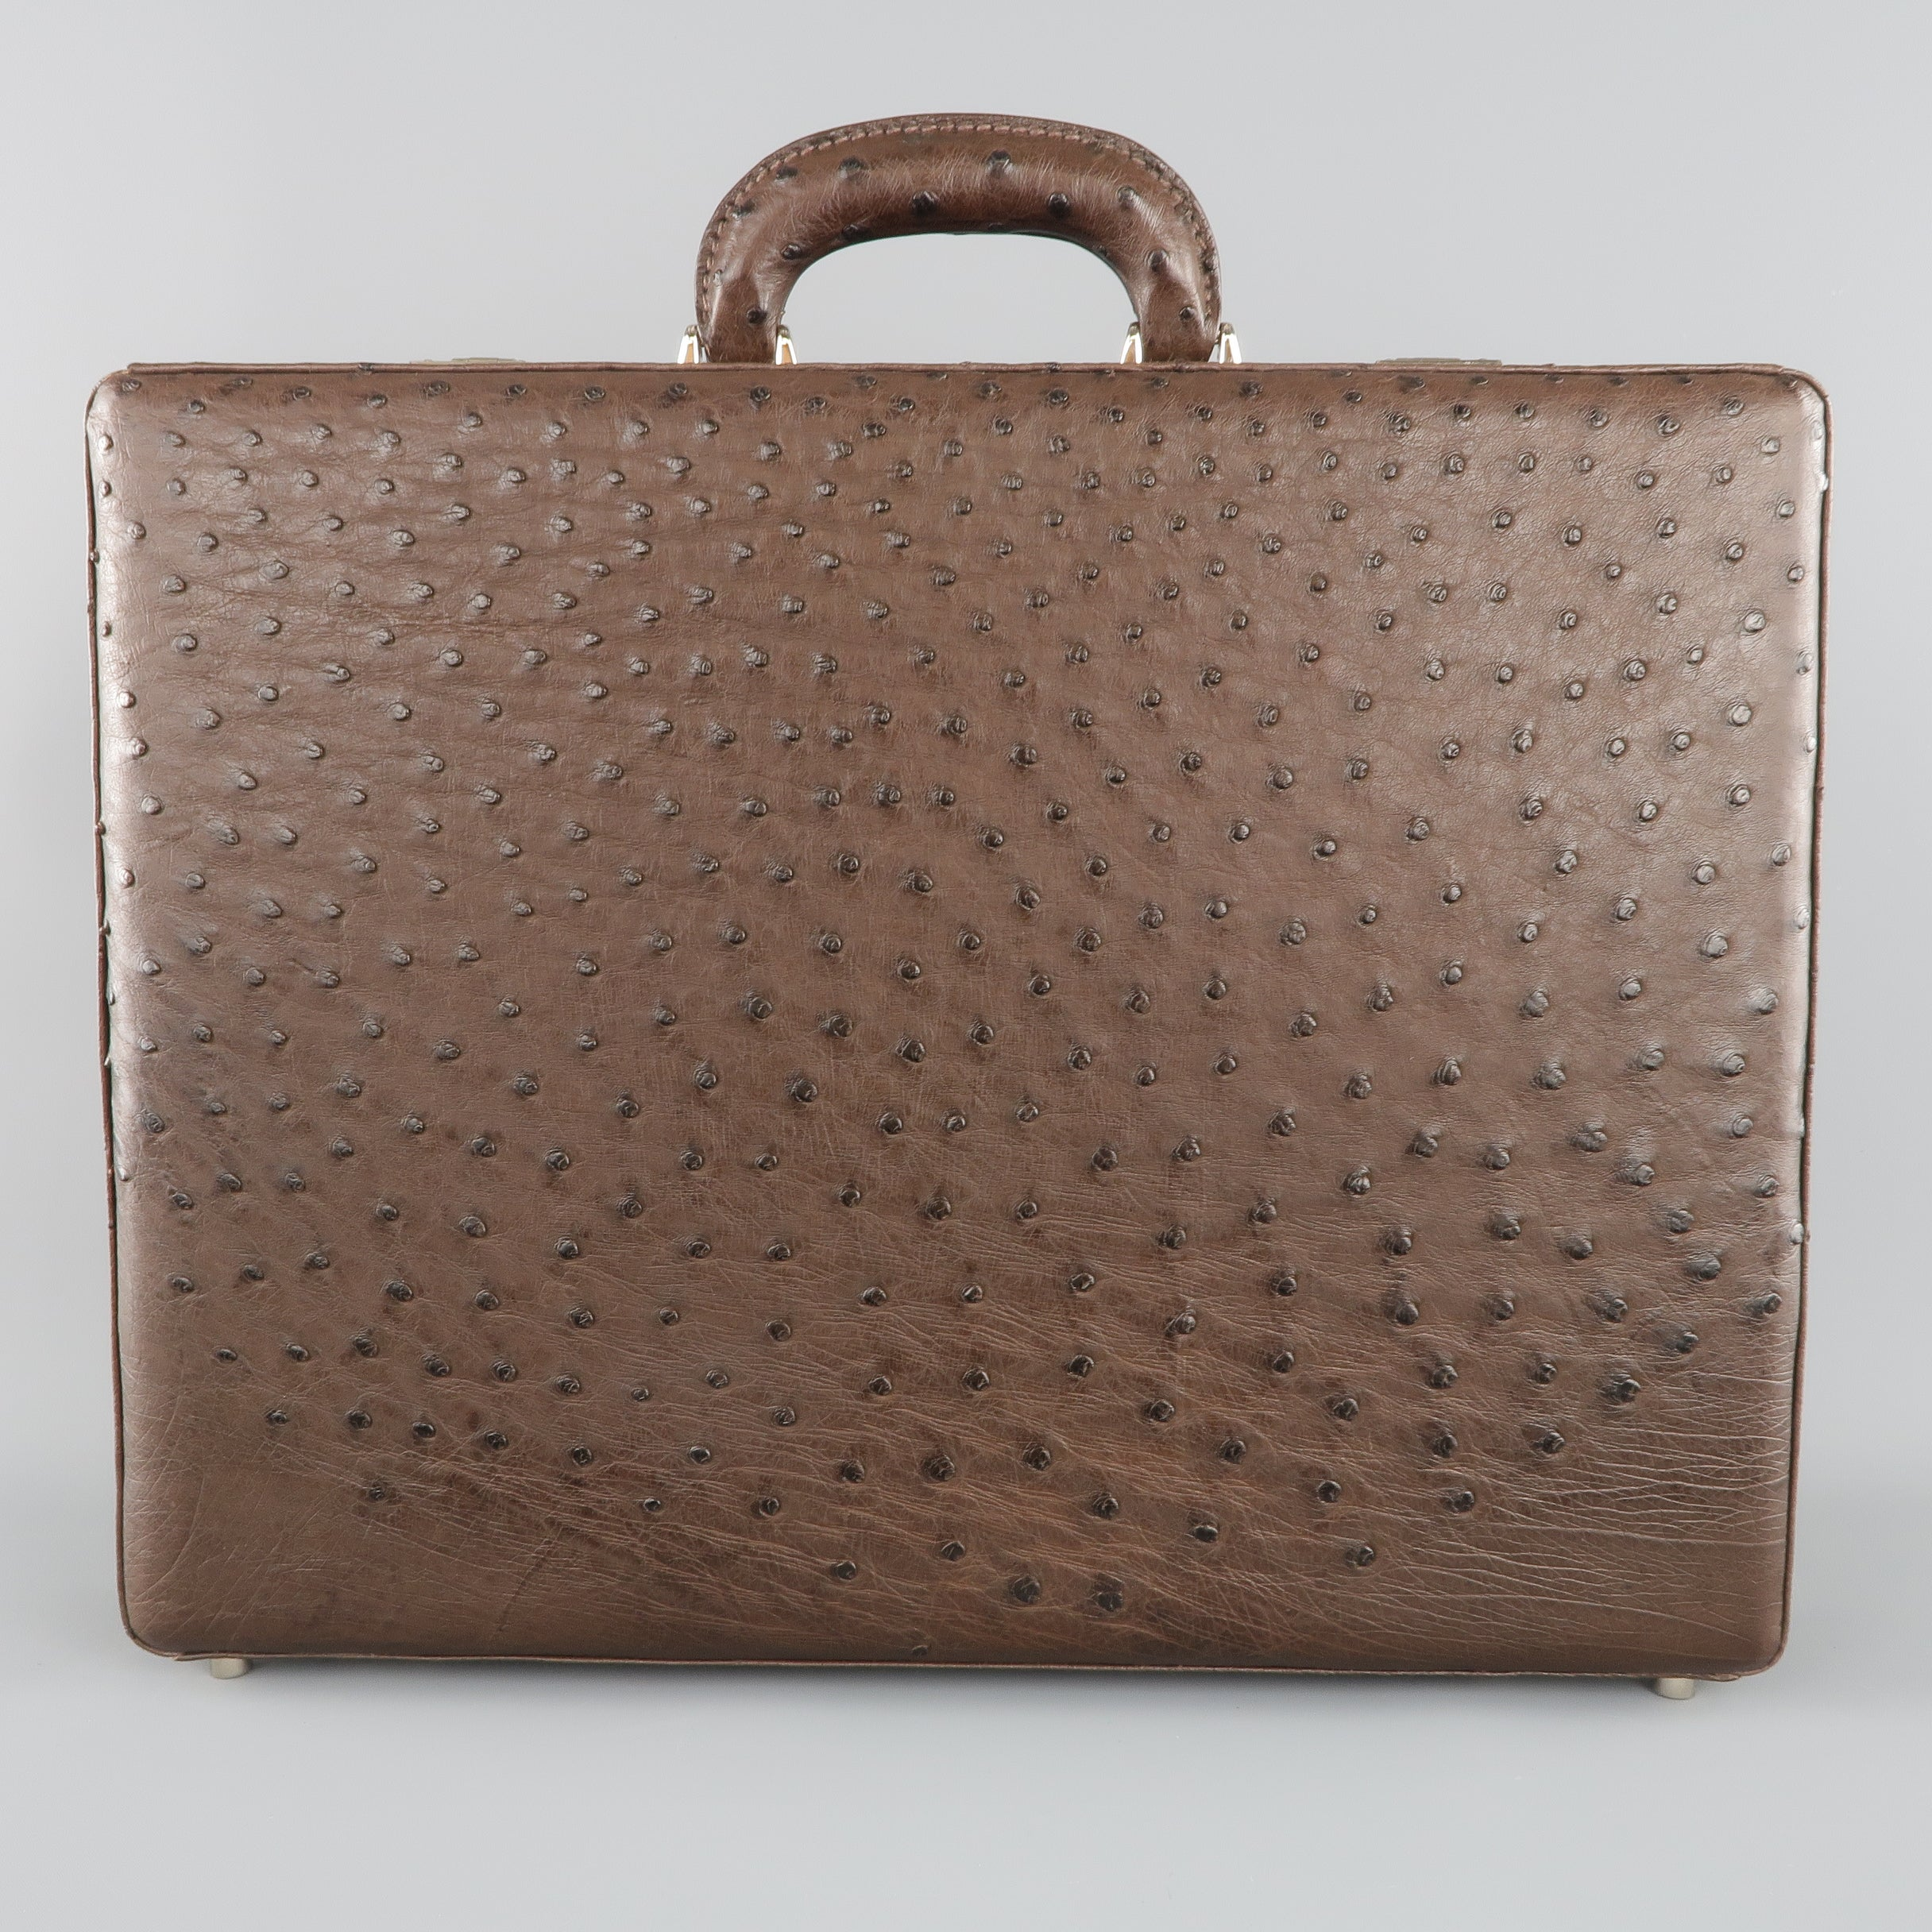 a5aaf744dc Cole Haan Briefcase - Large Brown Ostrich Leather Silver Lock Bag For Sale  at 1stdibs